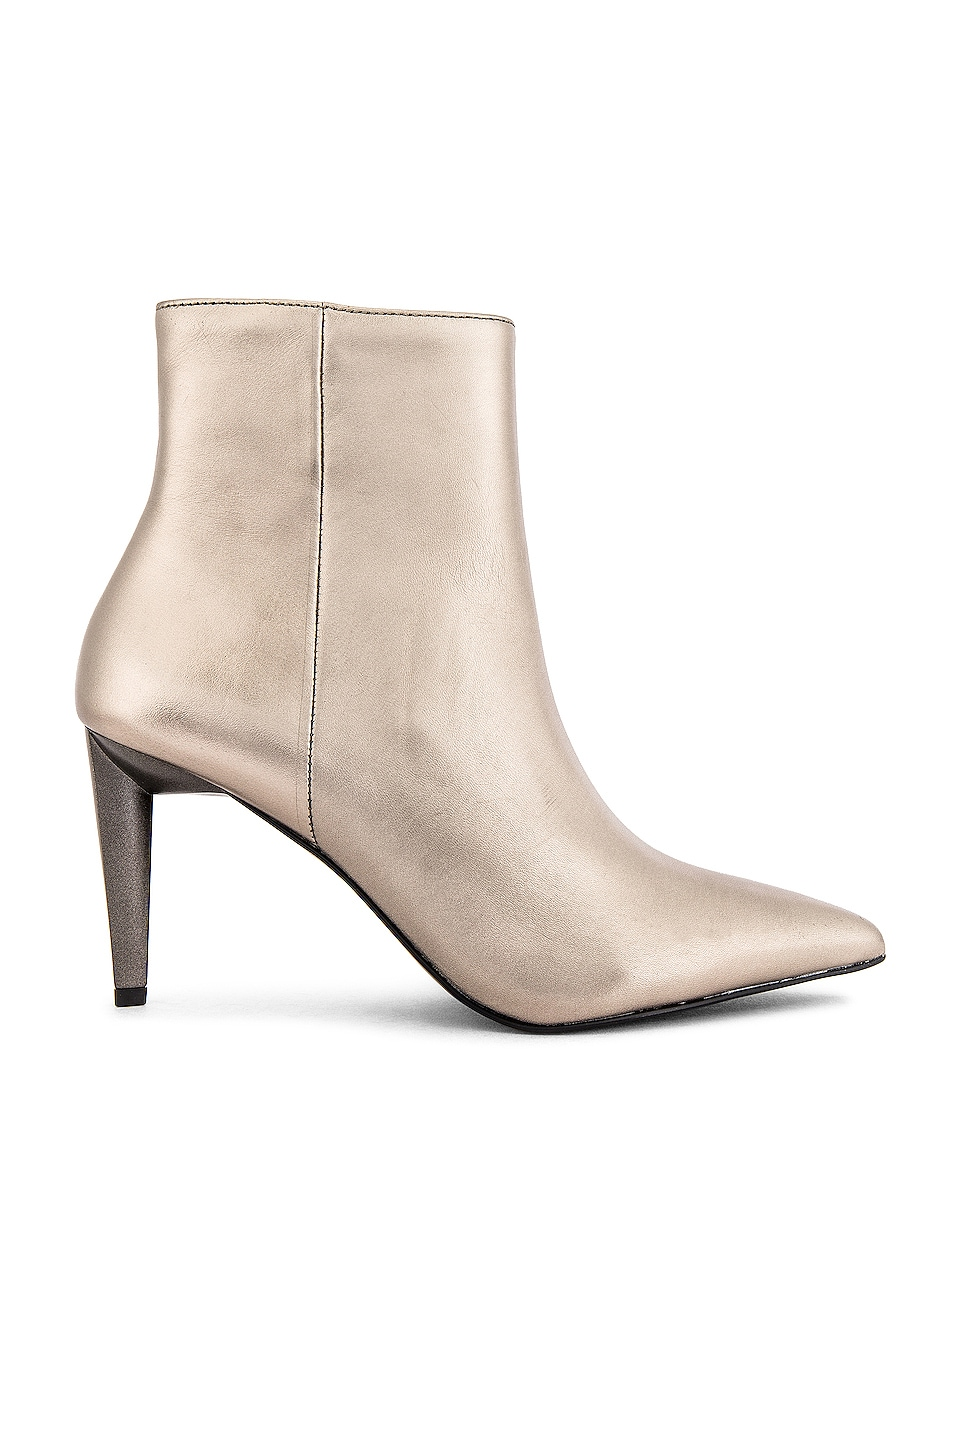 KENDALL + KYLIE Zoe Bootie in Pewter